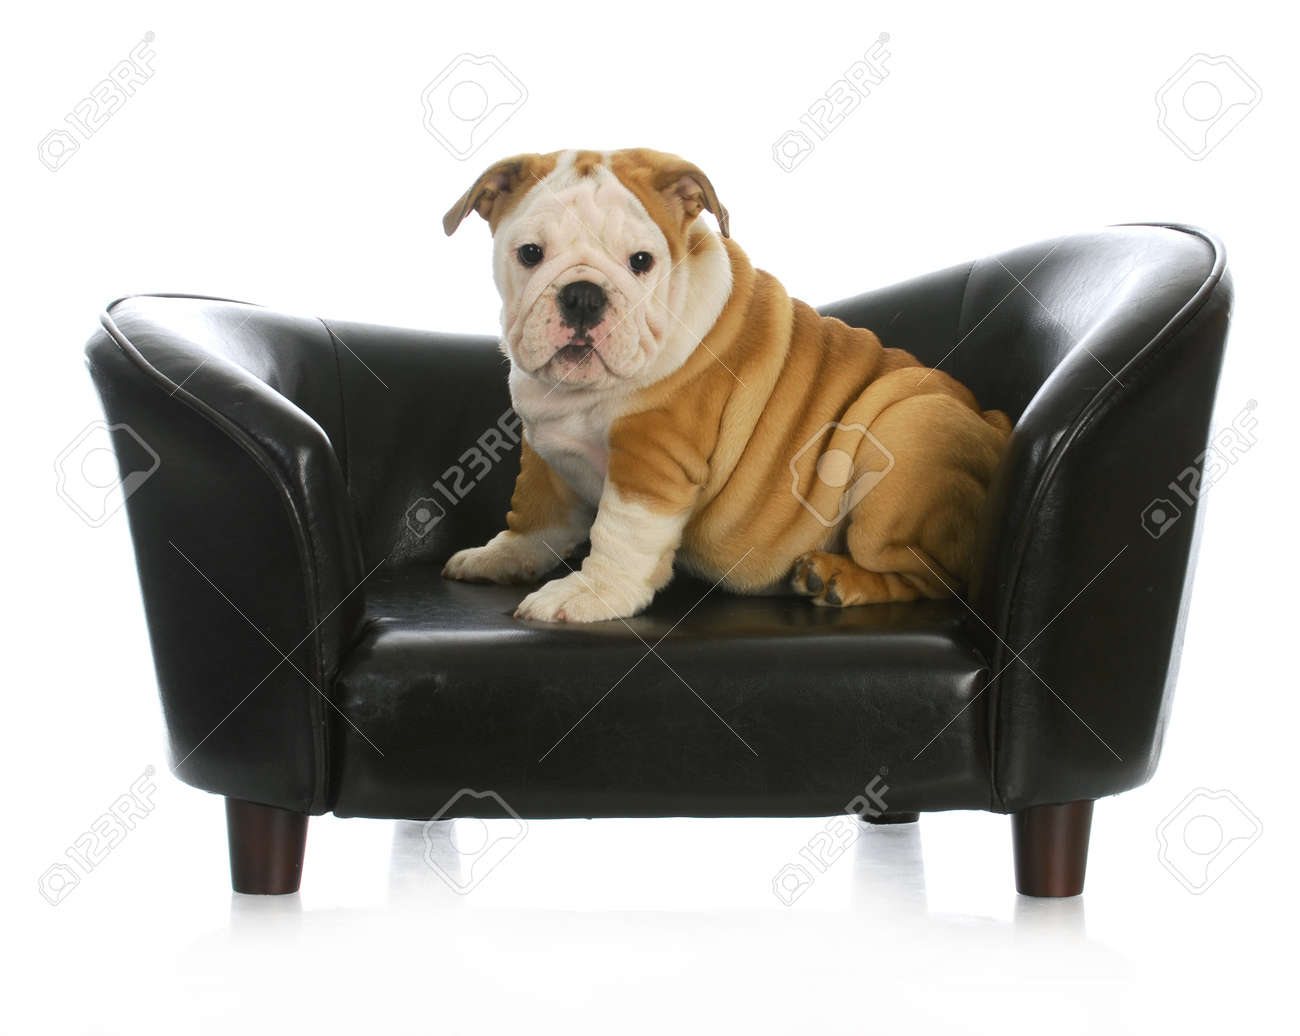 puppy on a dog bed - english bulldog puppy sitting on a dog couch - 11 weeks old Stock Photo - 11589101